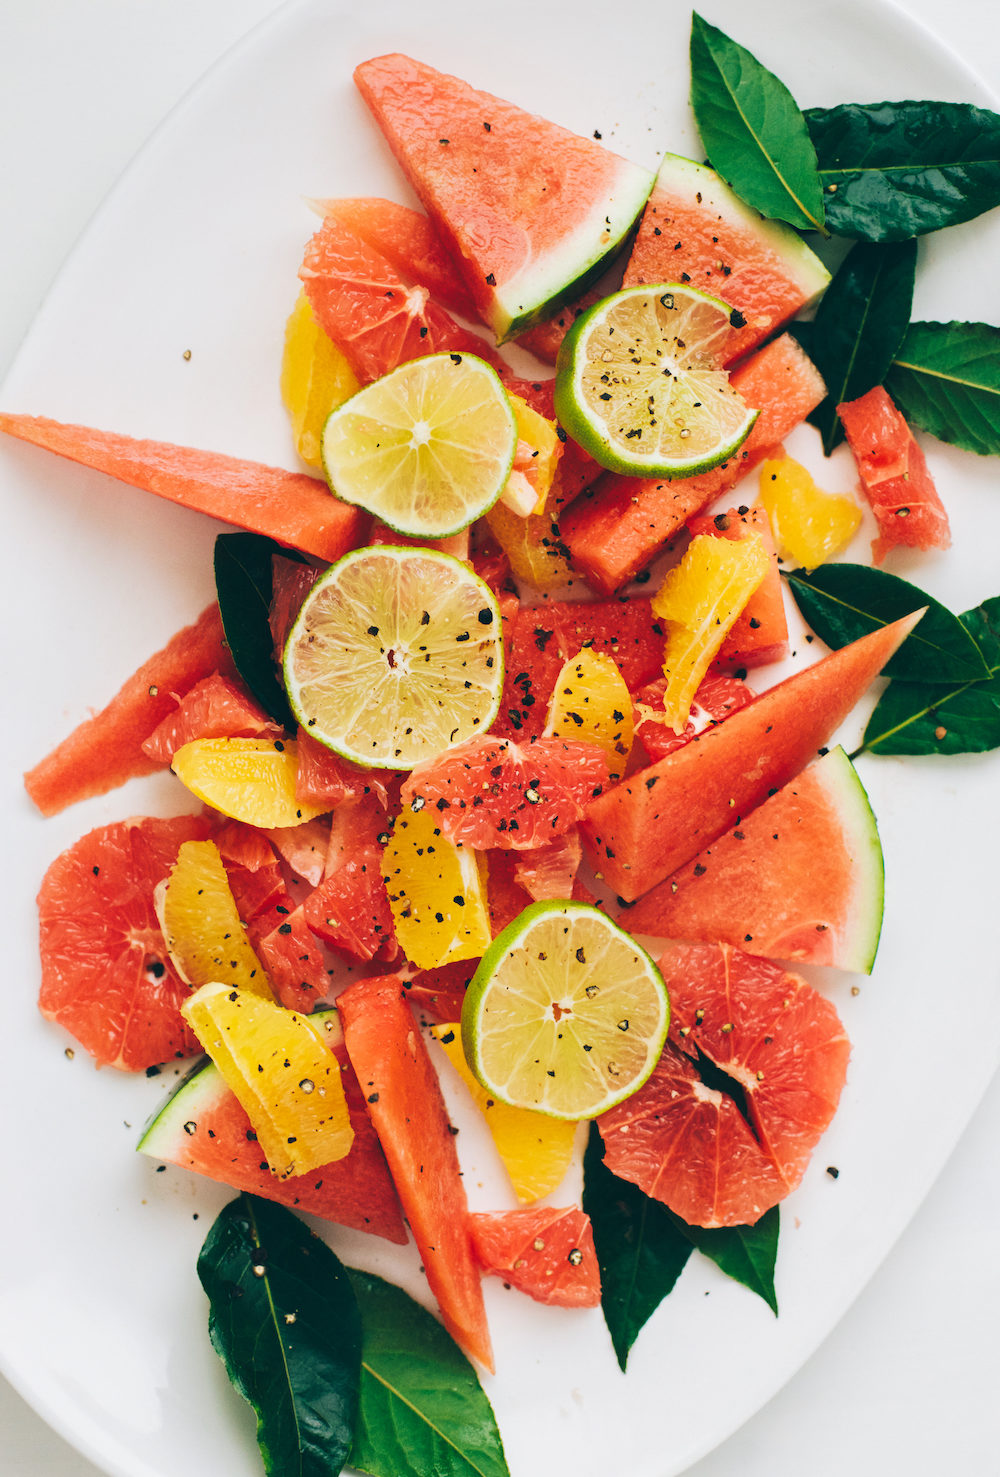 Citrus & Watermelon Salad with Fresh Bay Laurel